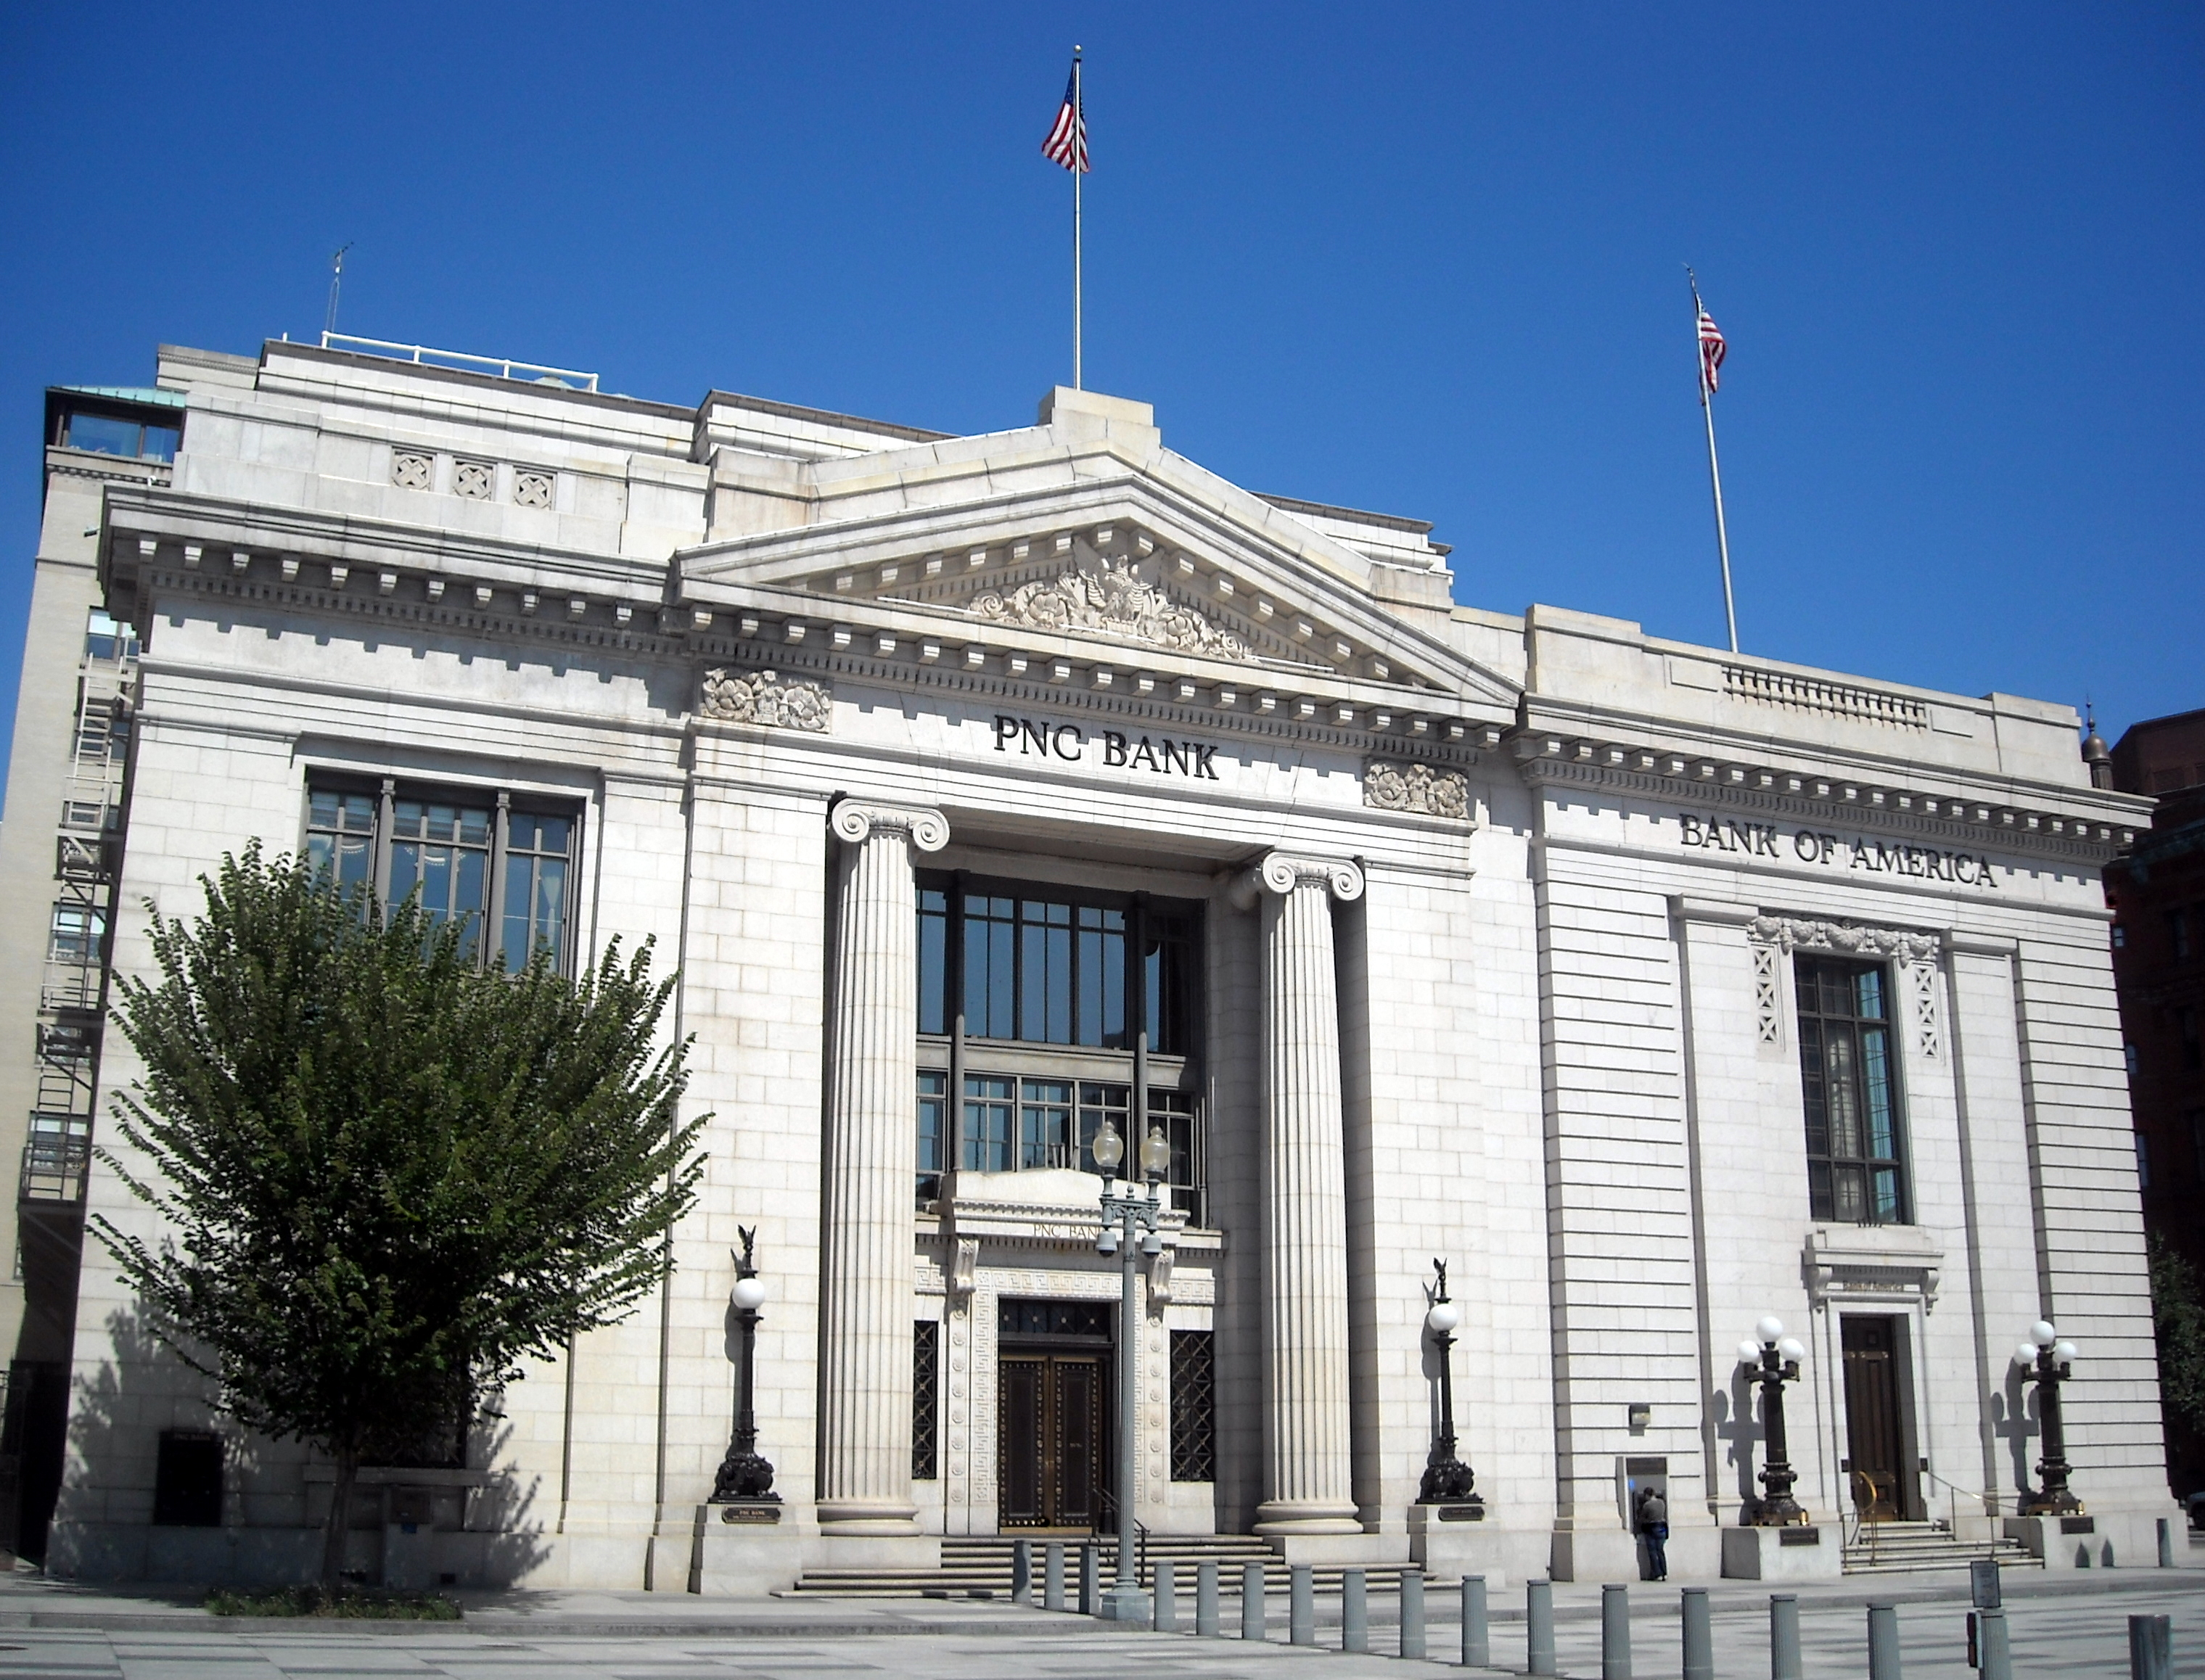 Riggs Bank - Wikipedia